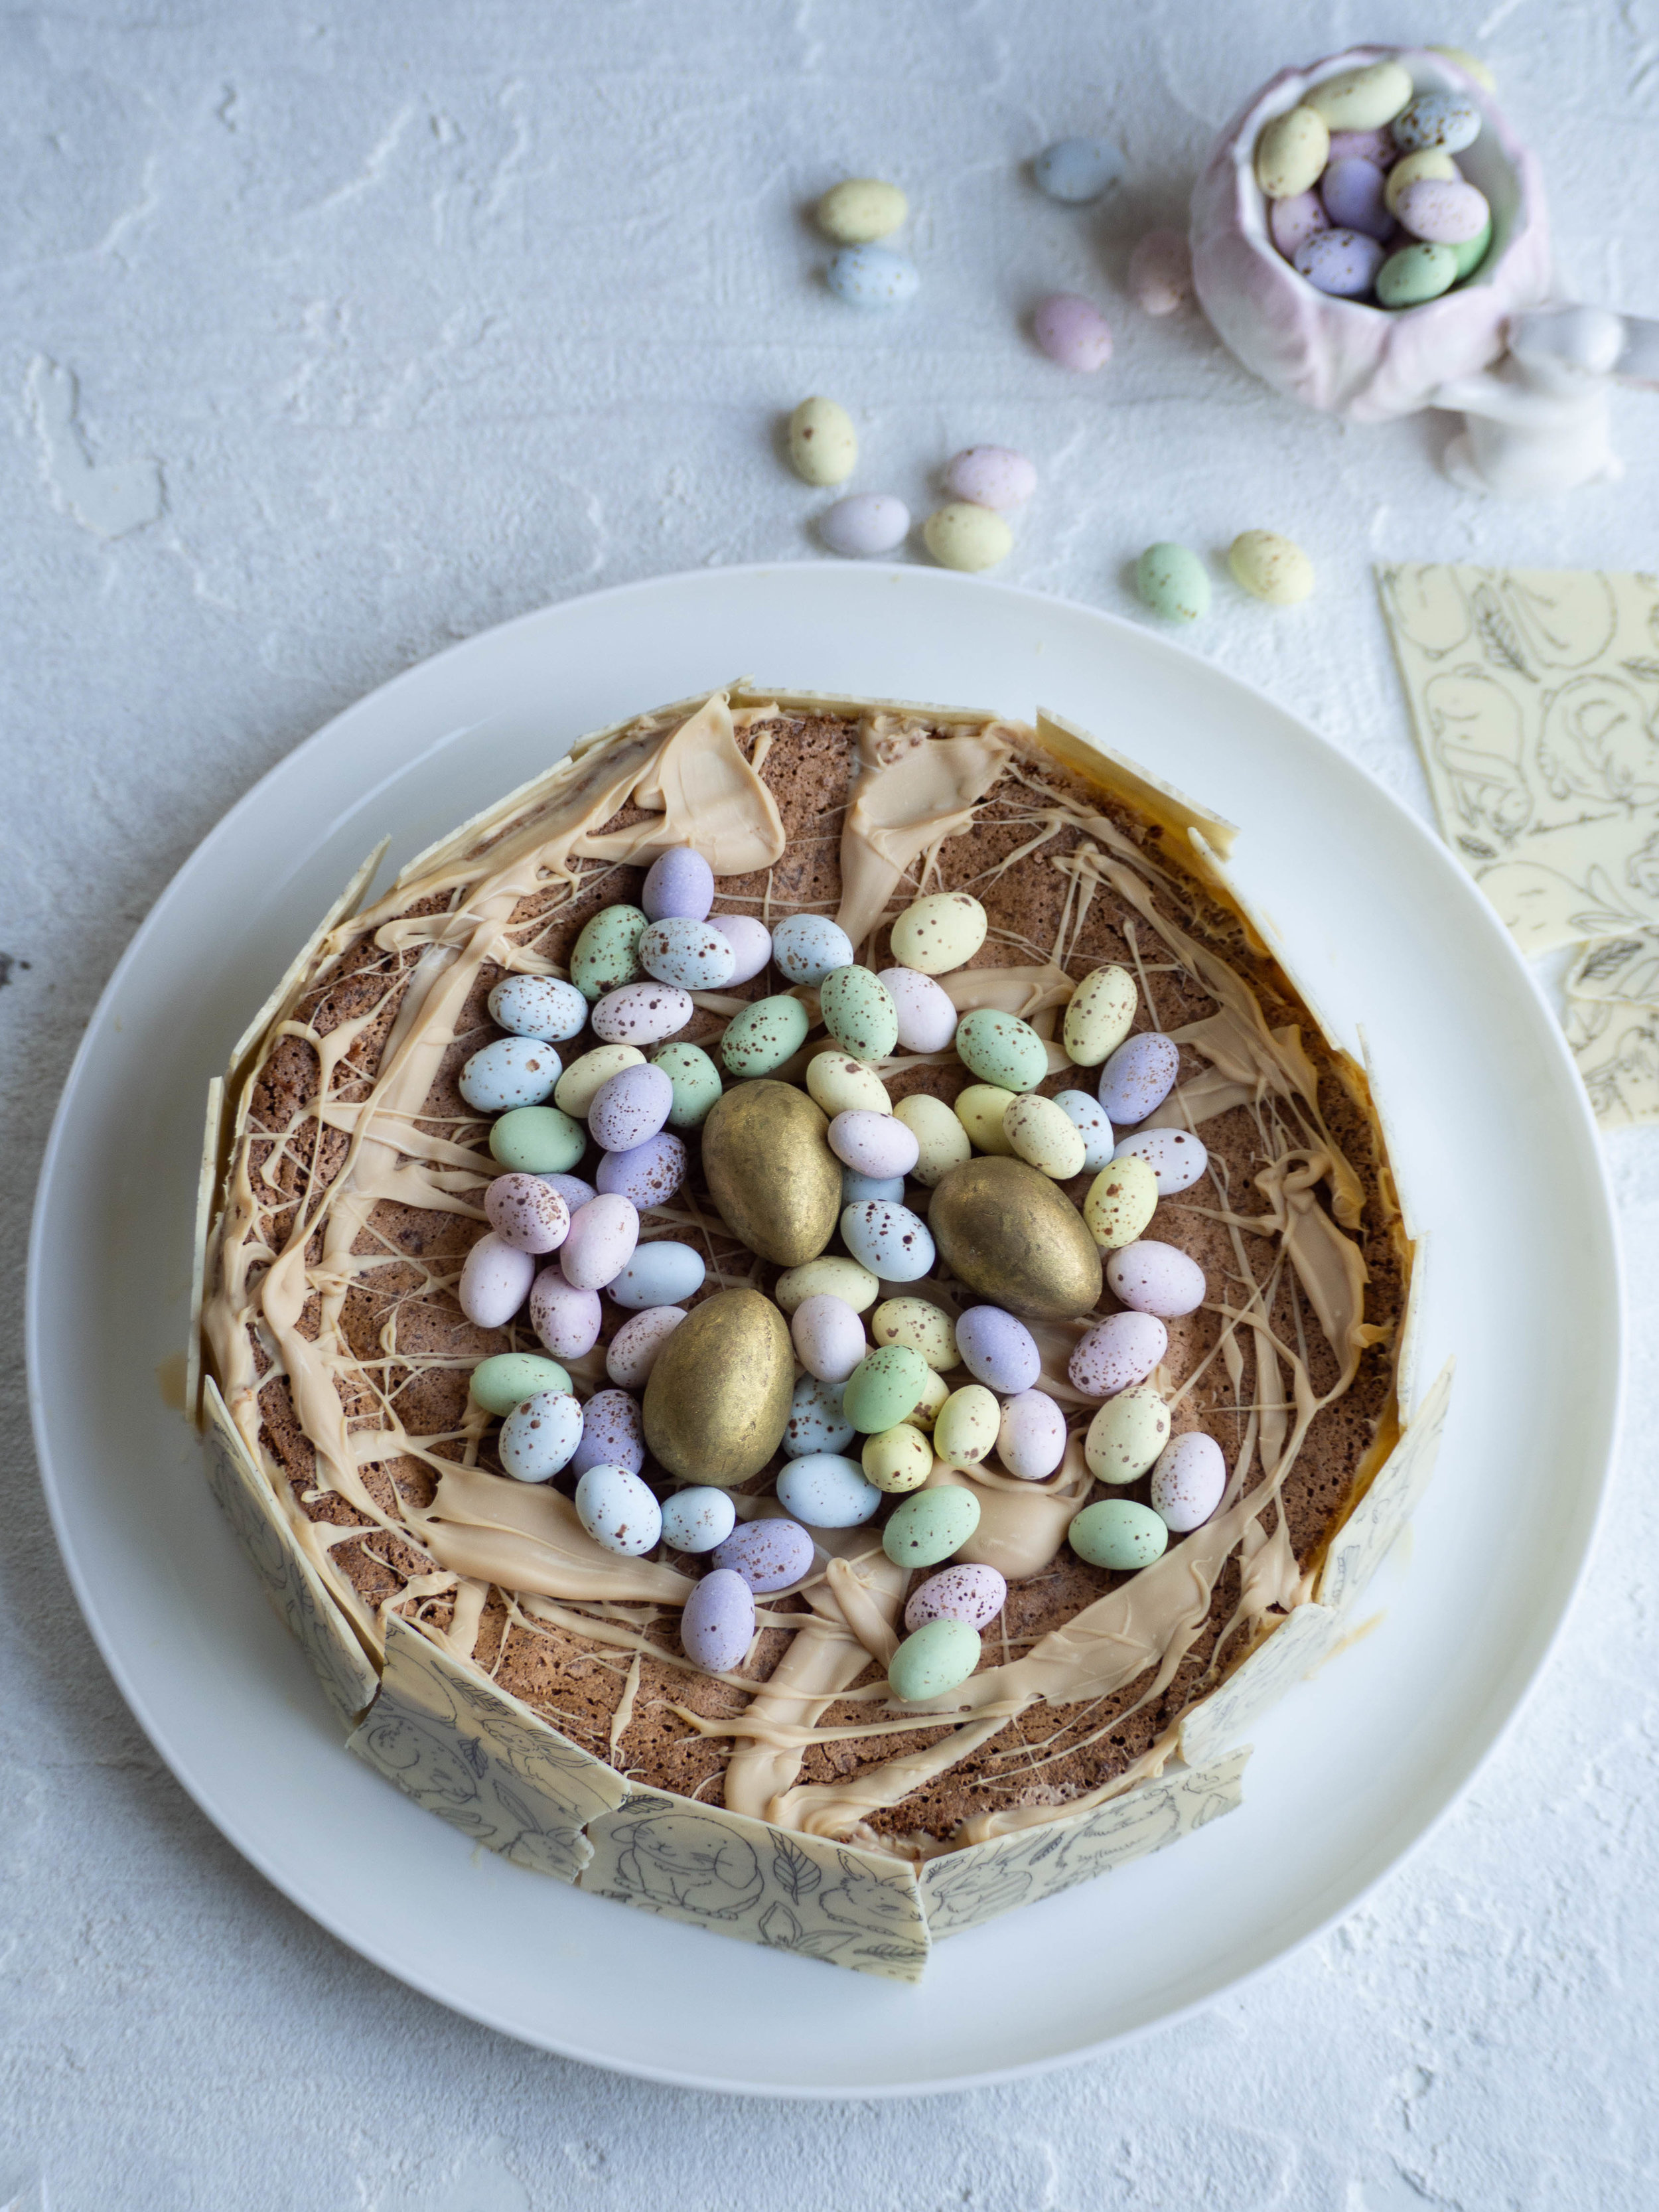 White Chocolate Easter Torte (Passover Friendly)